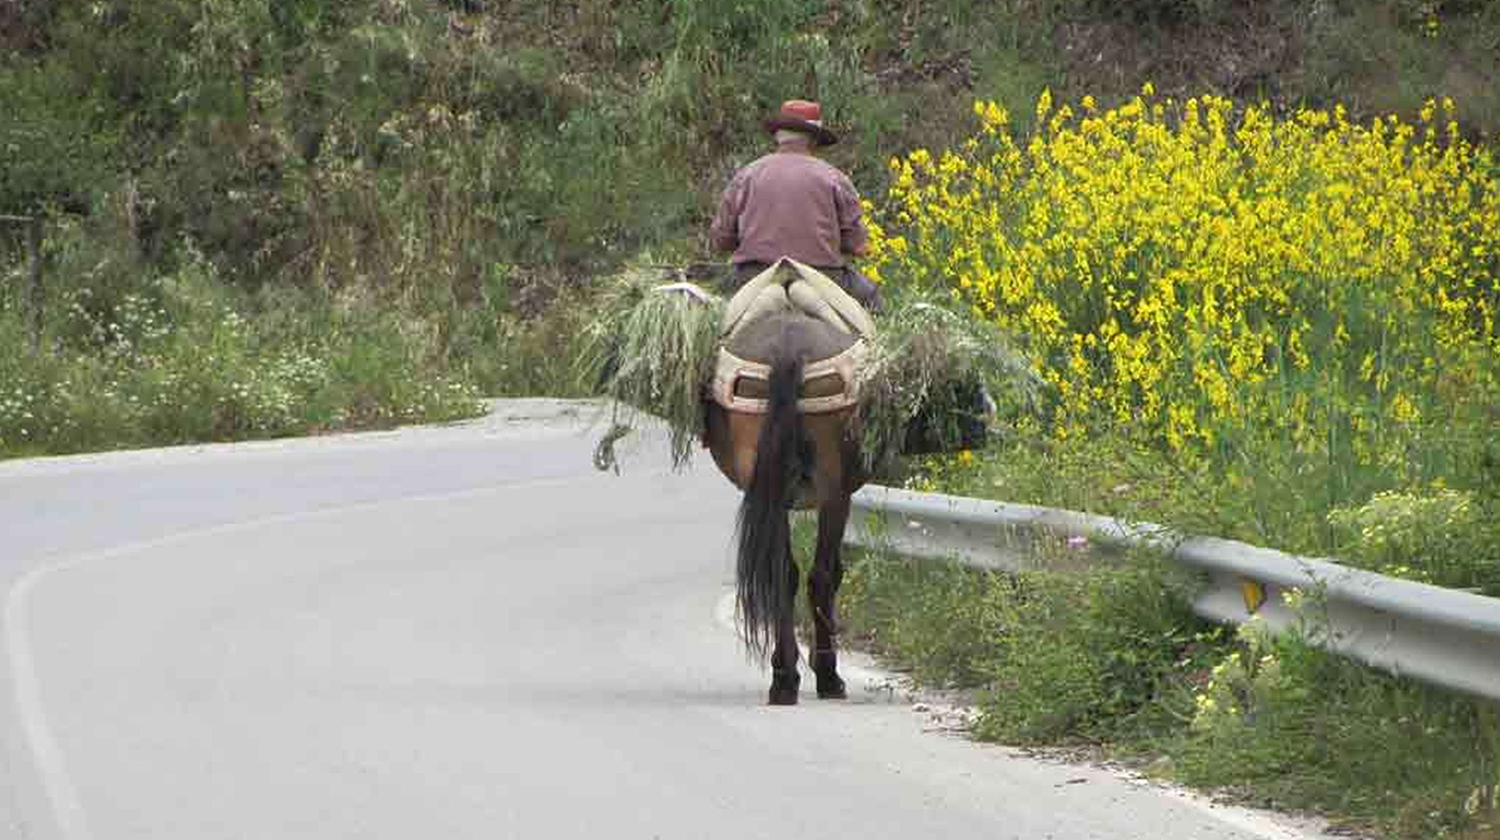 Its not the way we usually travel -this is just one of those sights you are likely to see on our Andalucía East tour -  here travel happens at an entirely different pace - relax and let us do all the work!